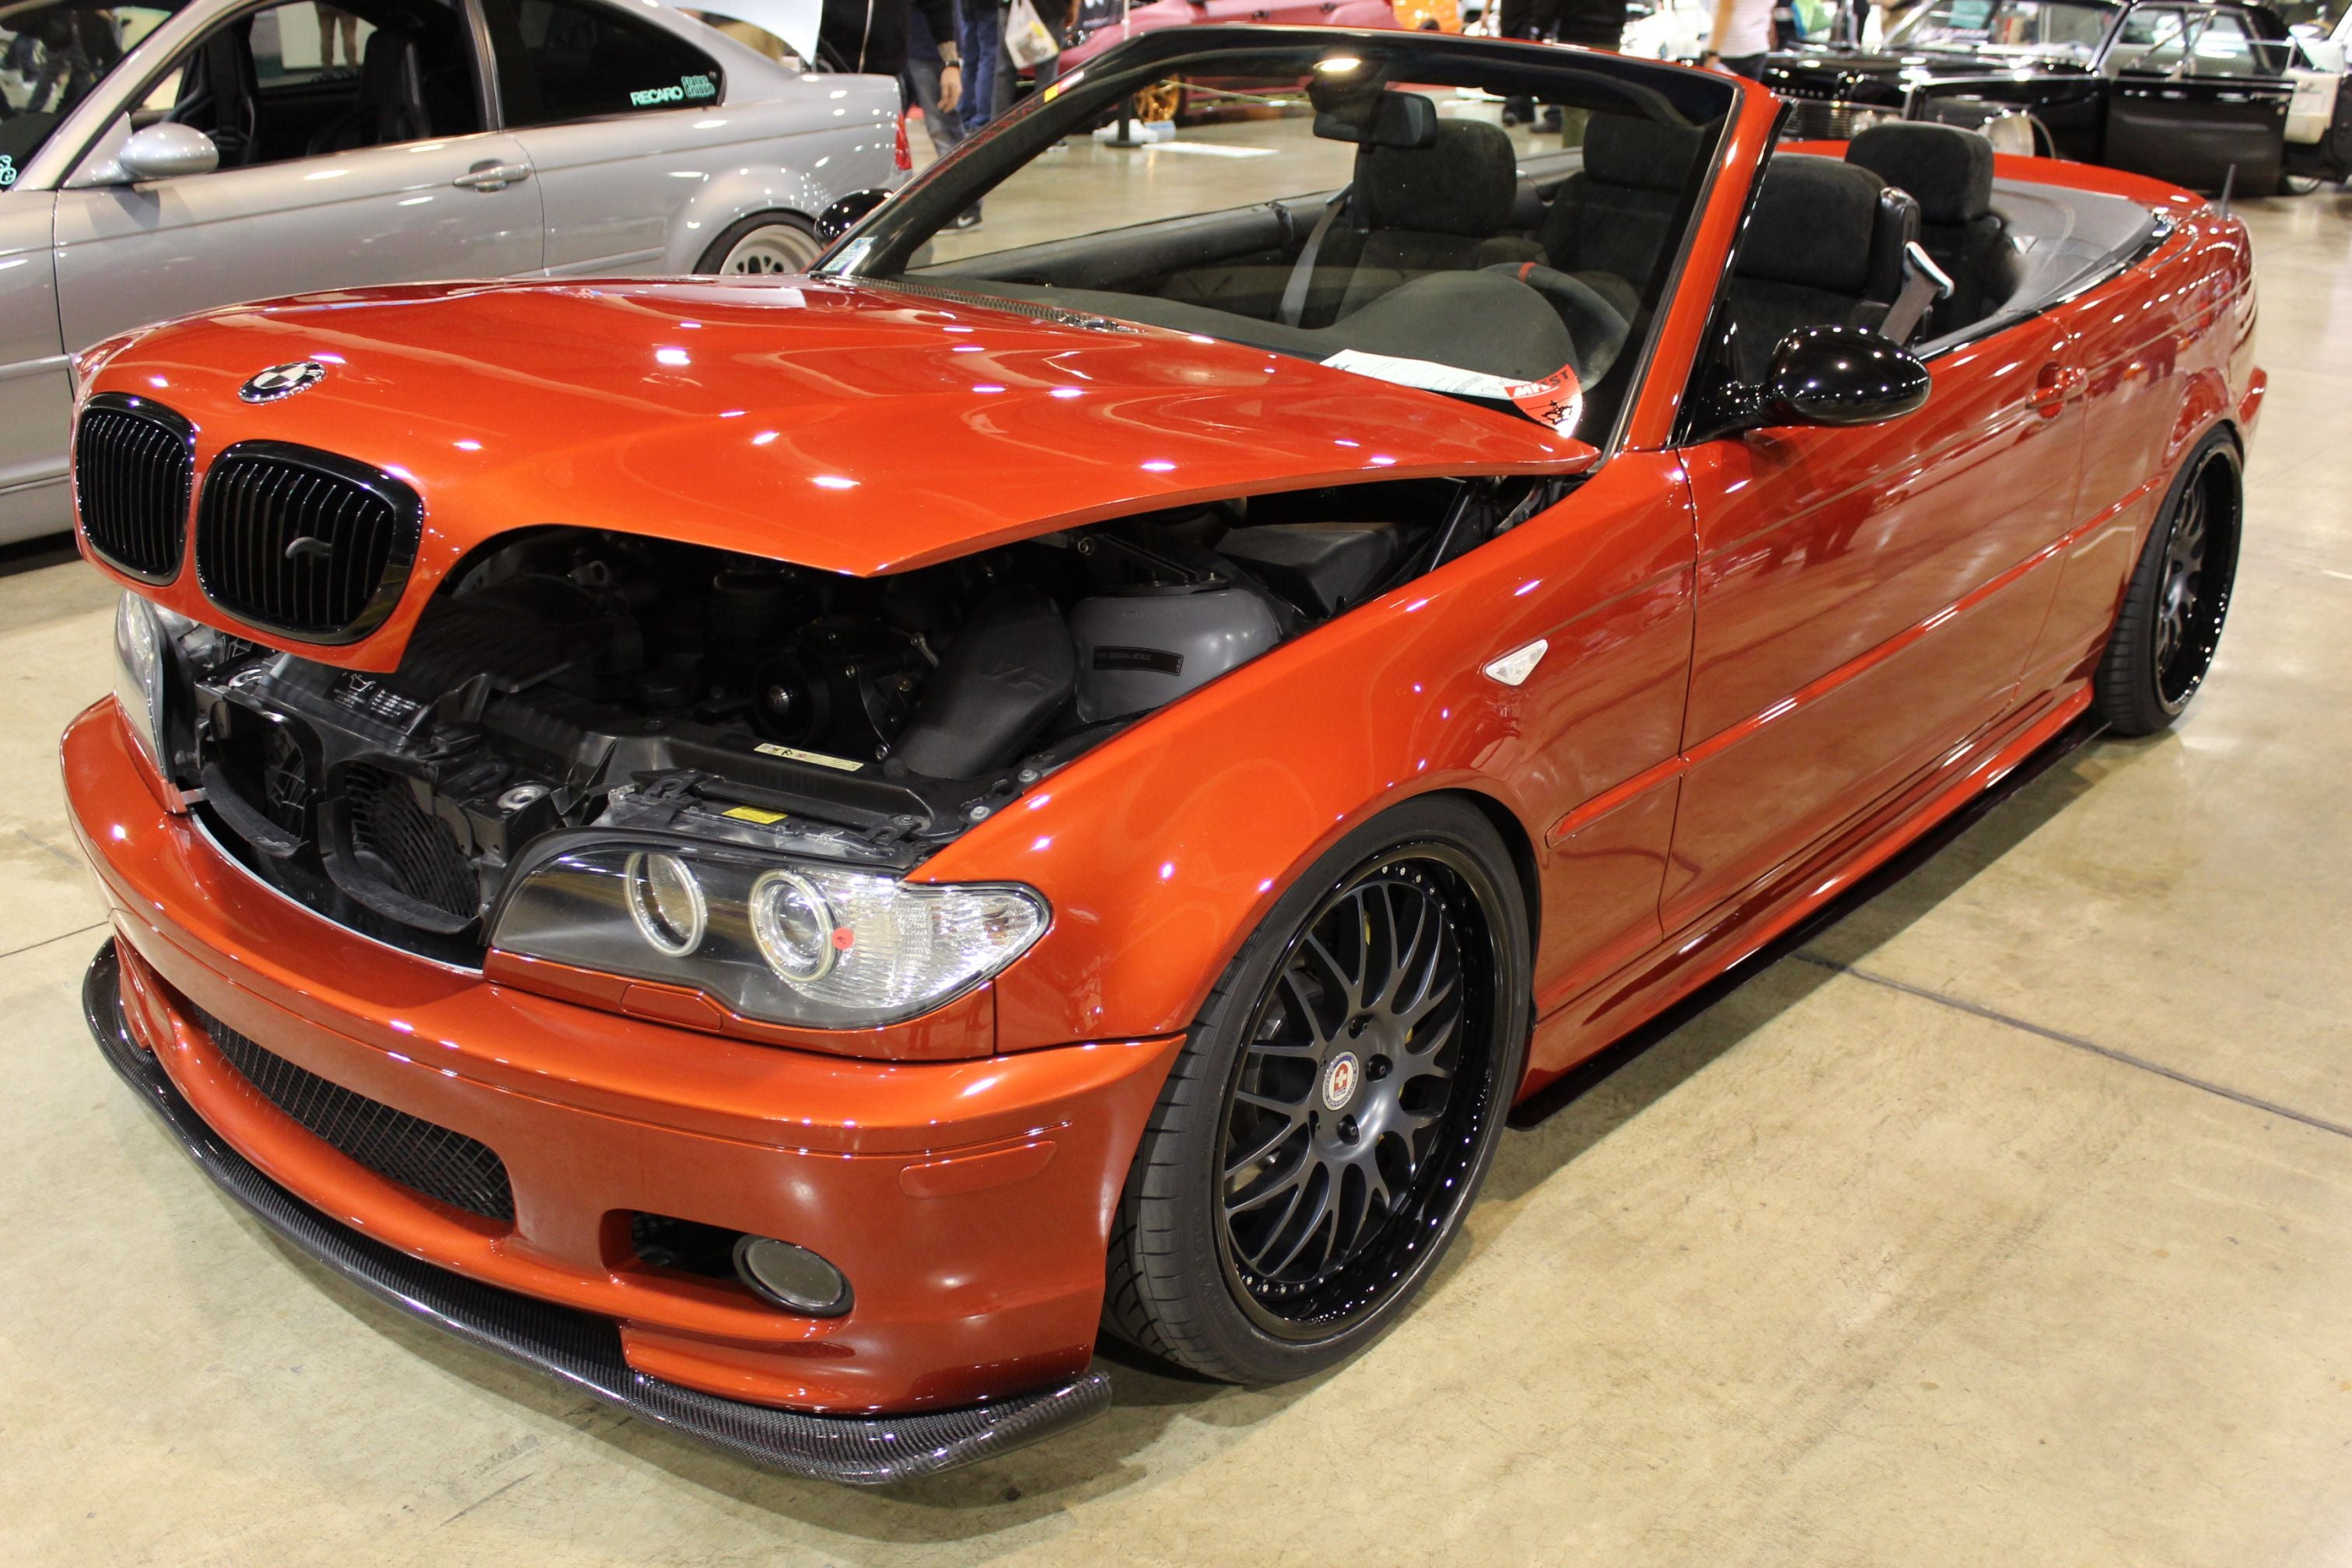 Vortech/VF-Engineering E46 BMW Convertible